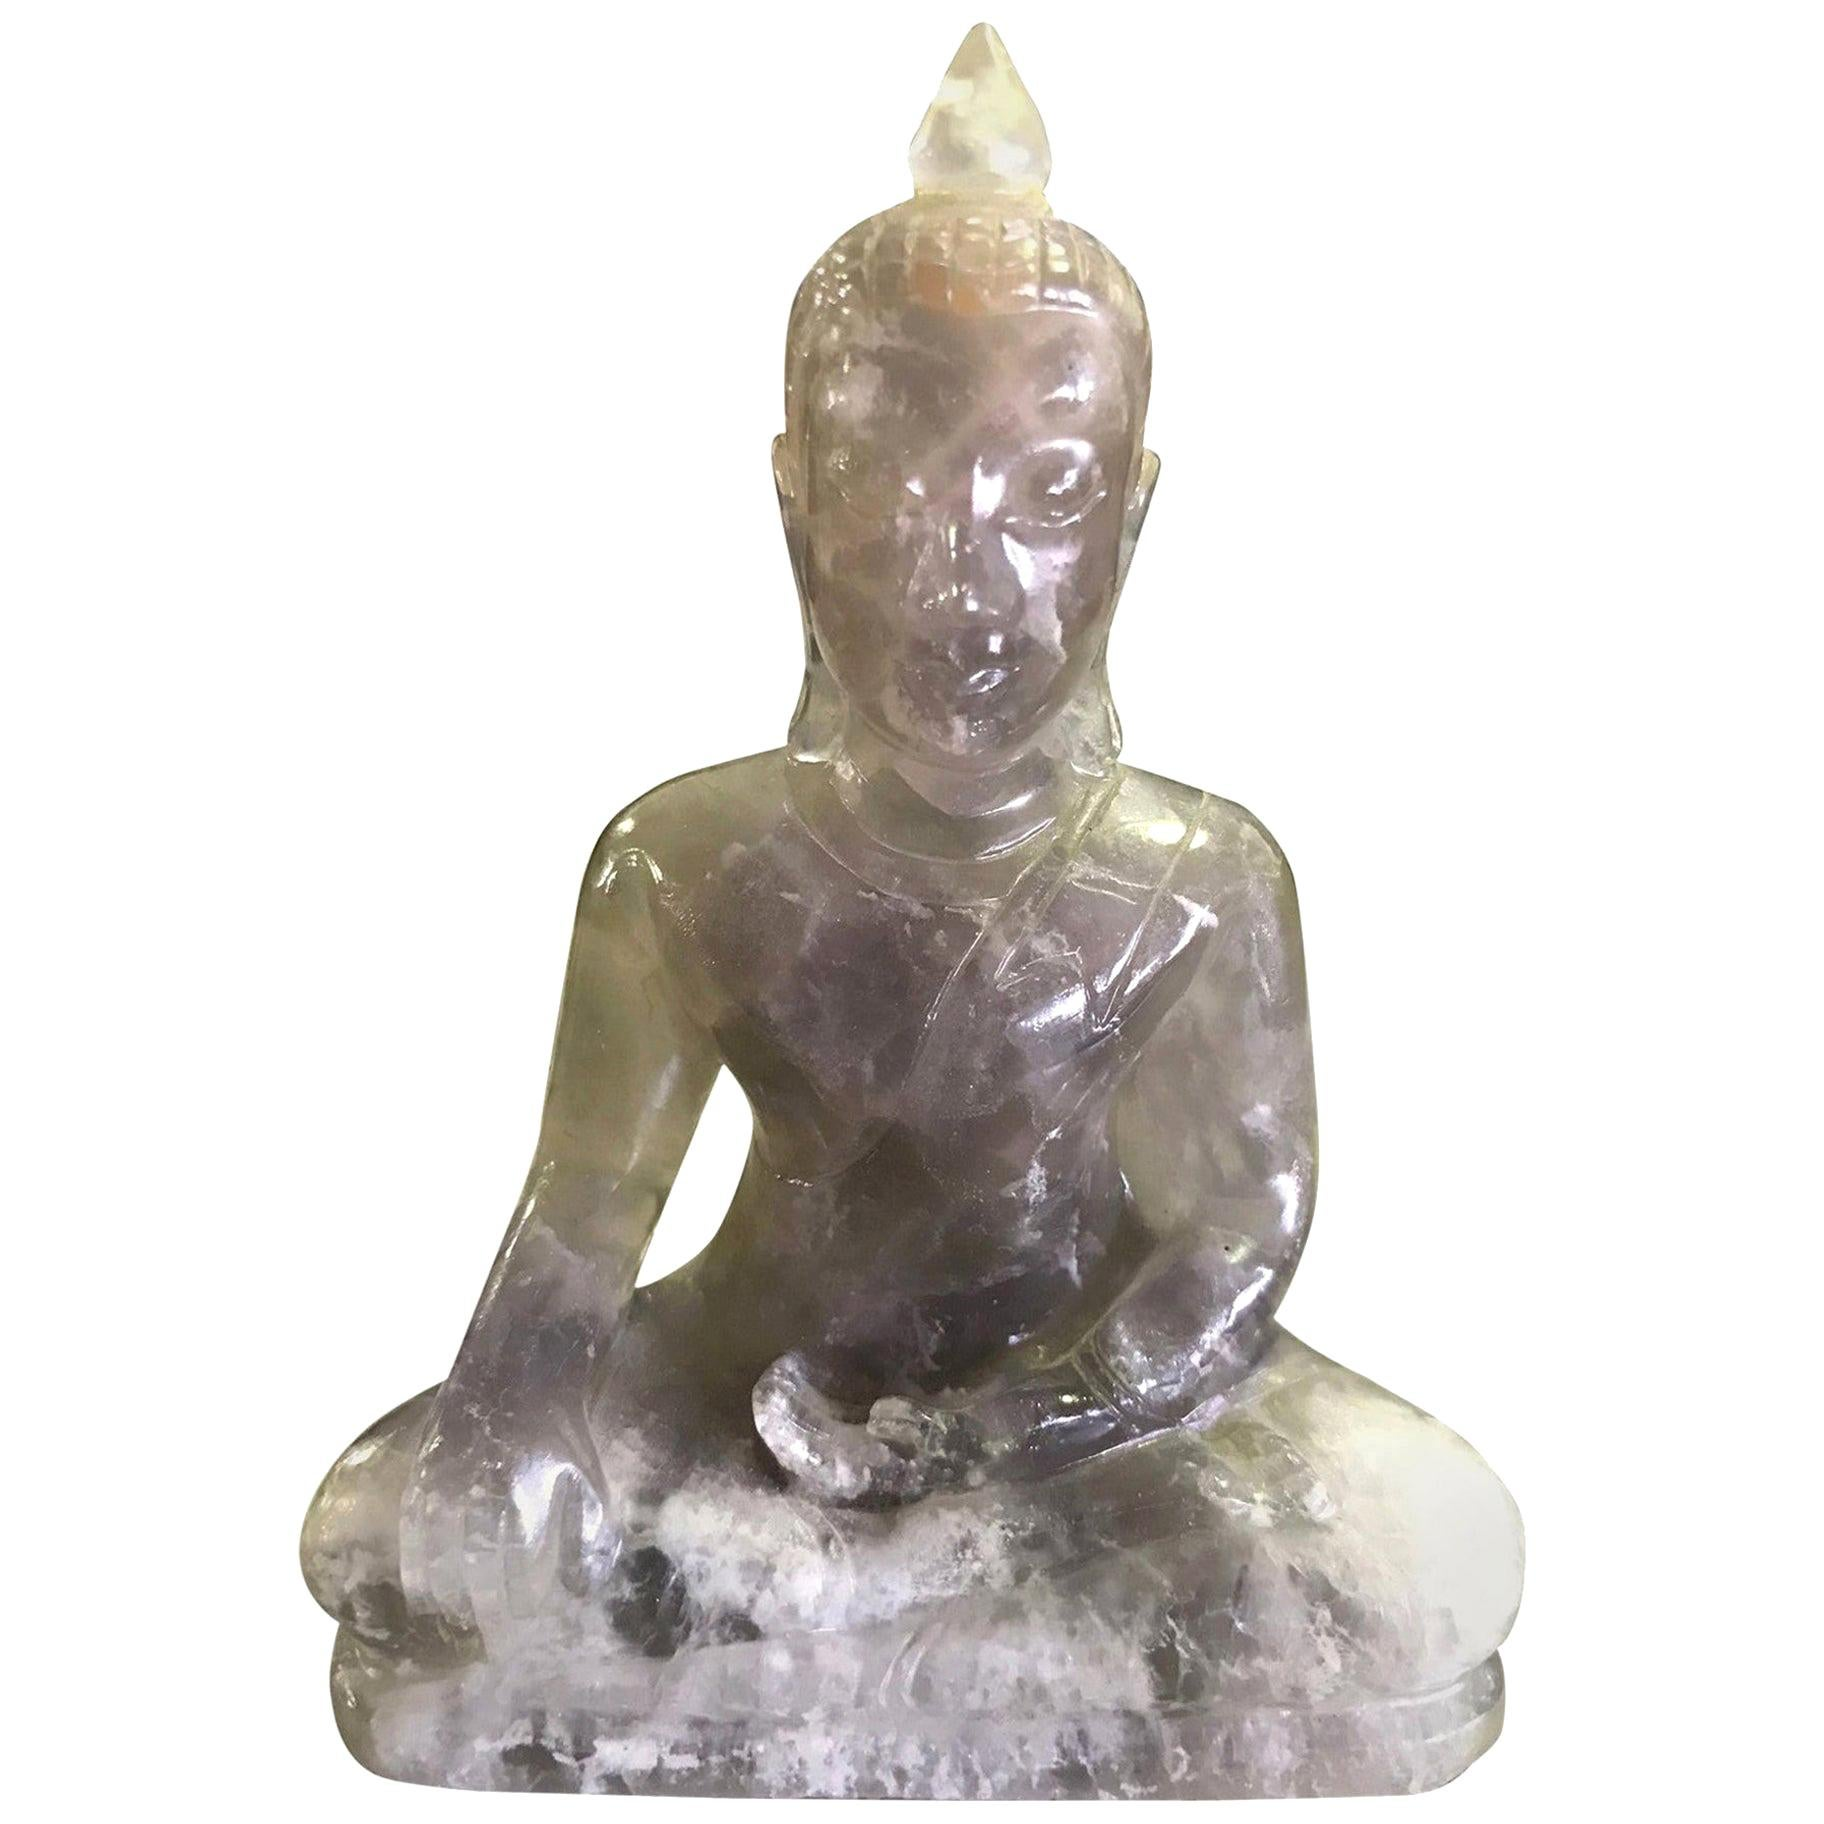 Carved Rock Crystal Seated Buddha Sculpture